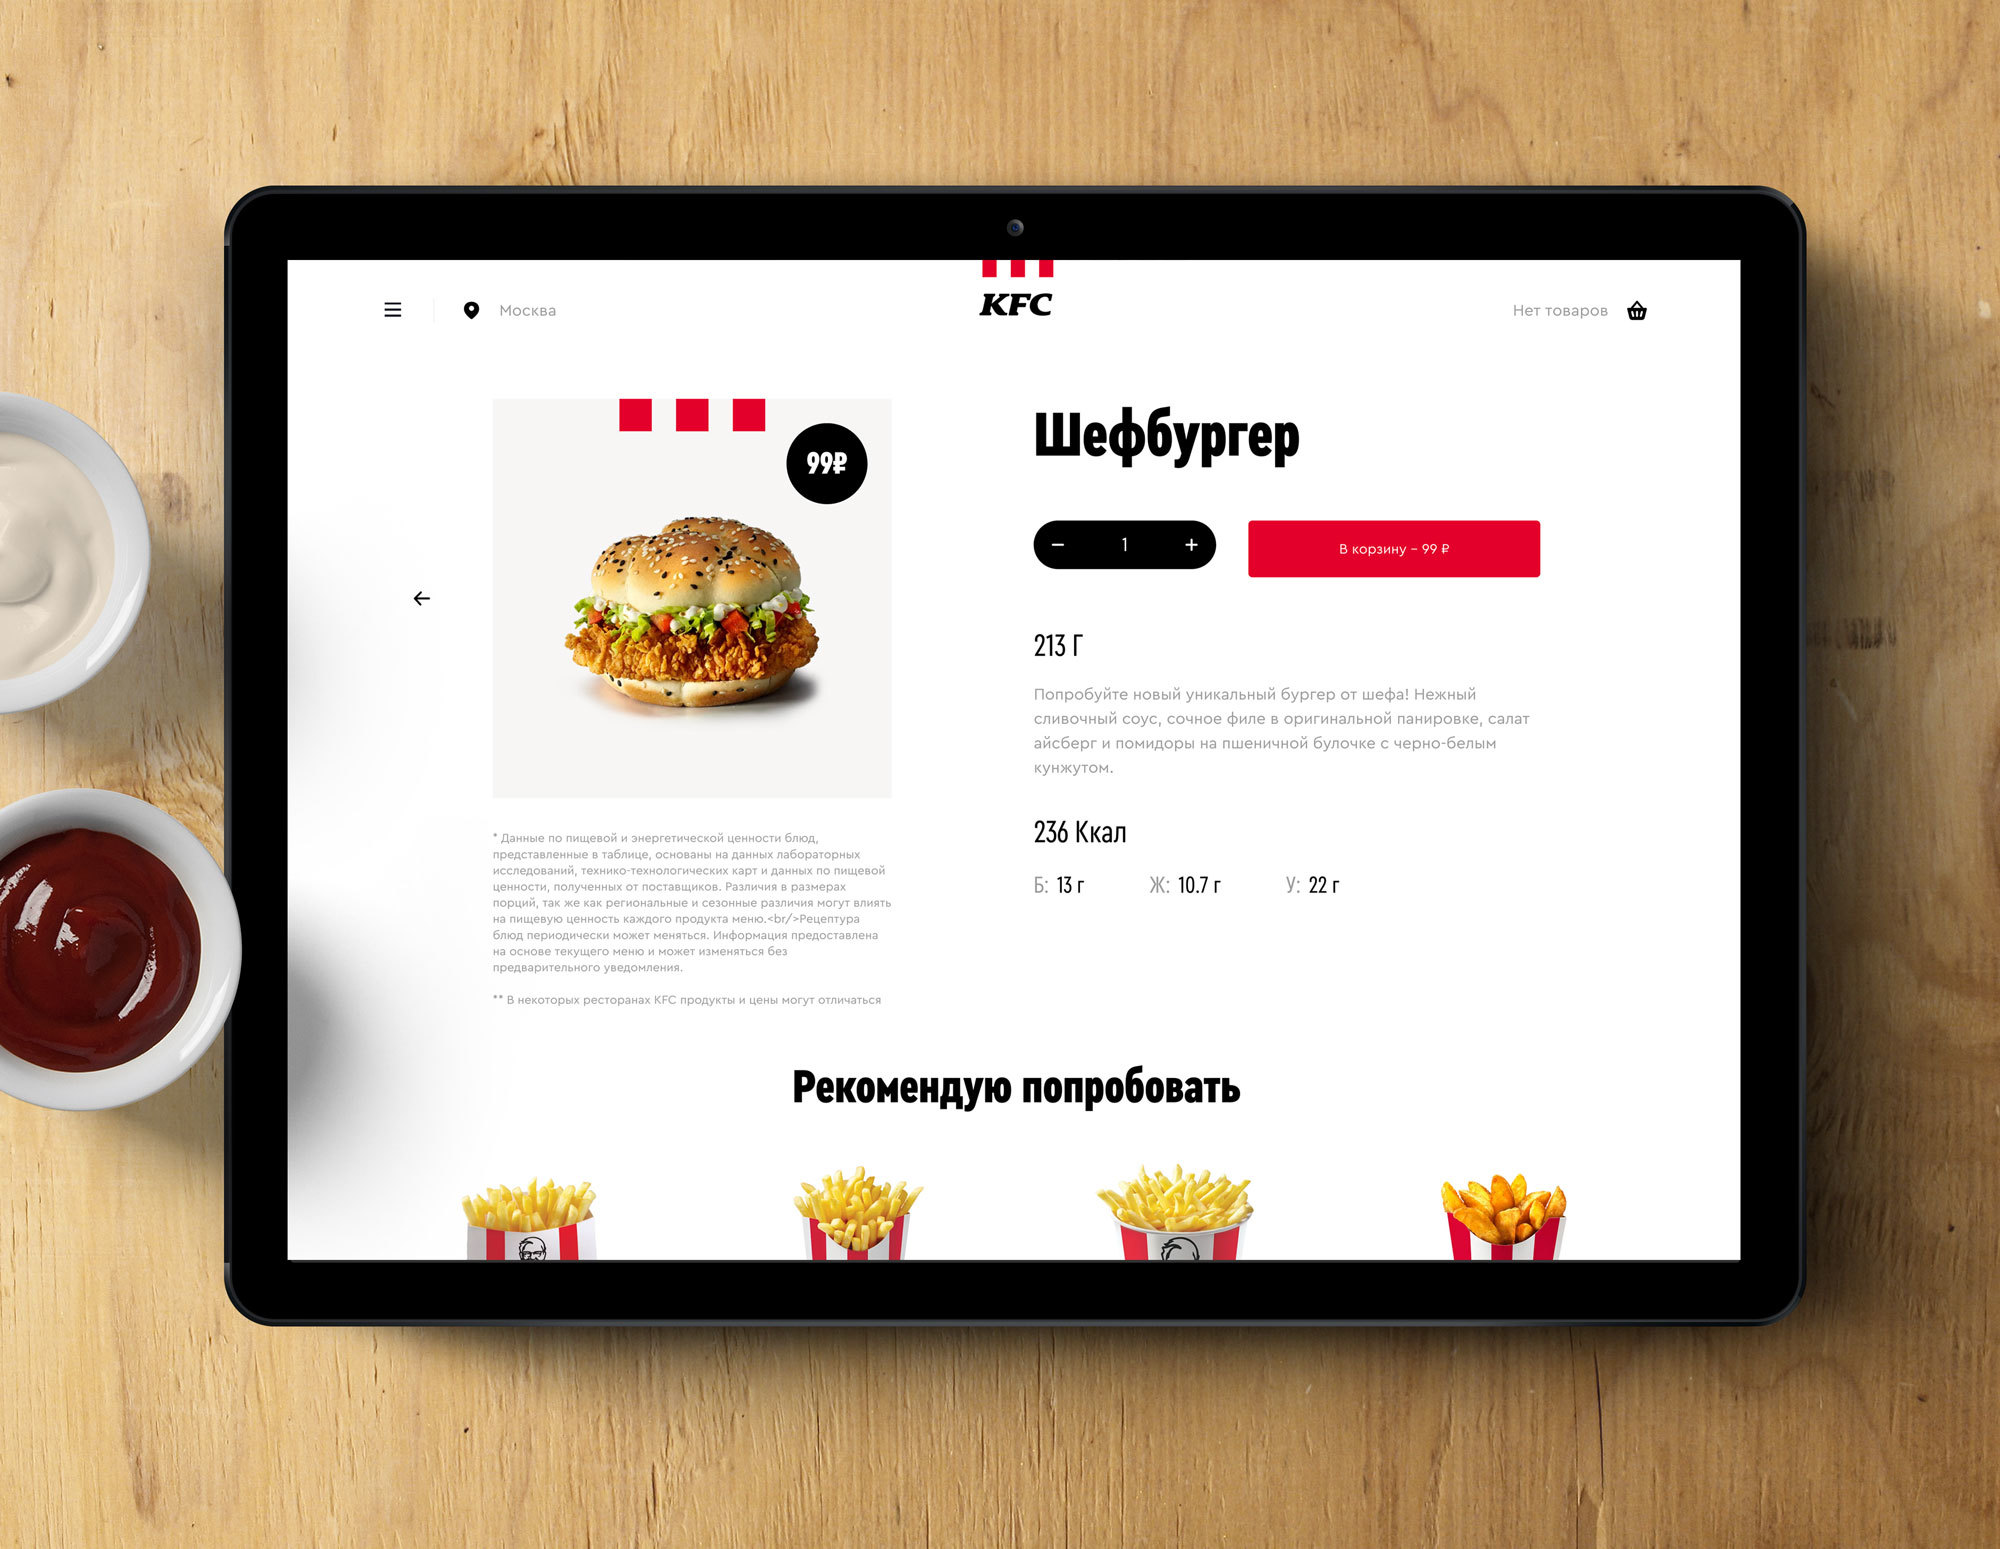 Type Mates Fonts In Use Kentucky Fried Chicken Russia 09 Cera Condensed Pro